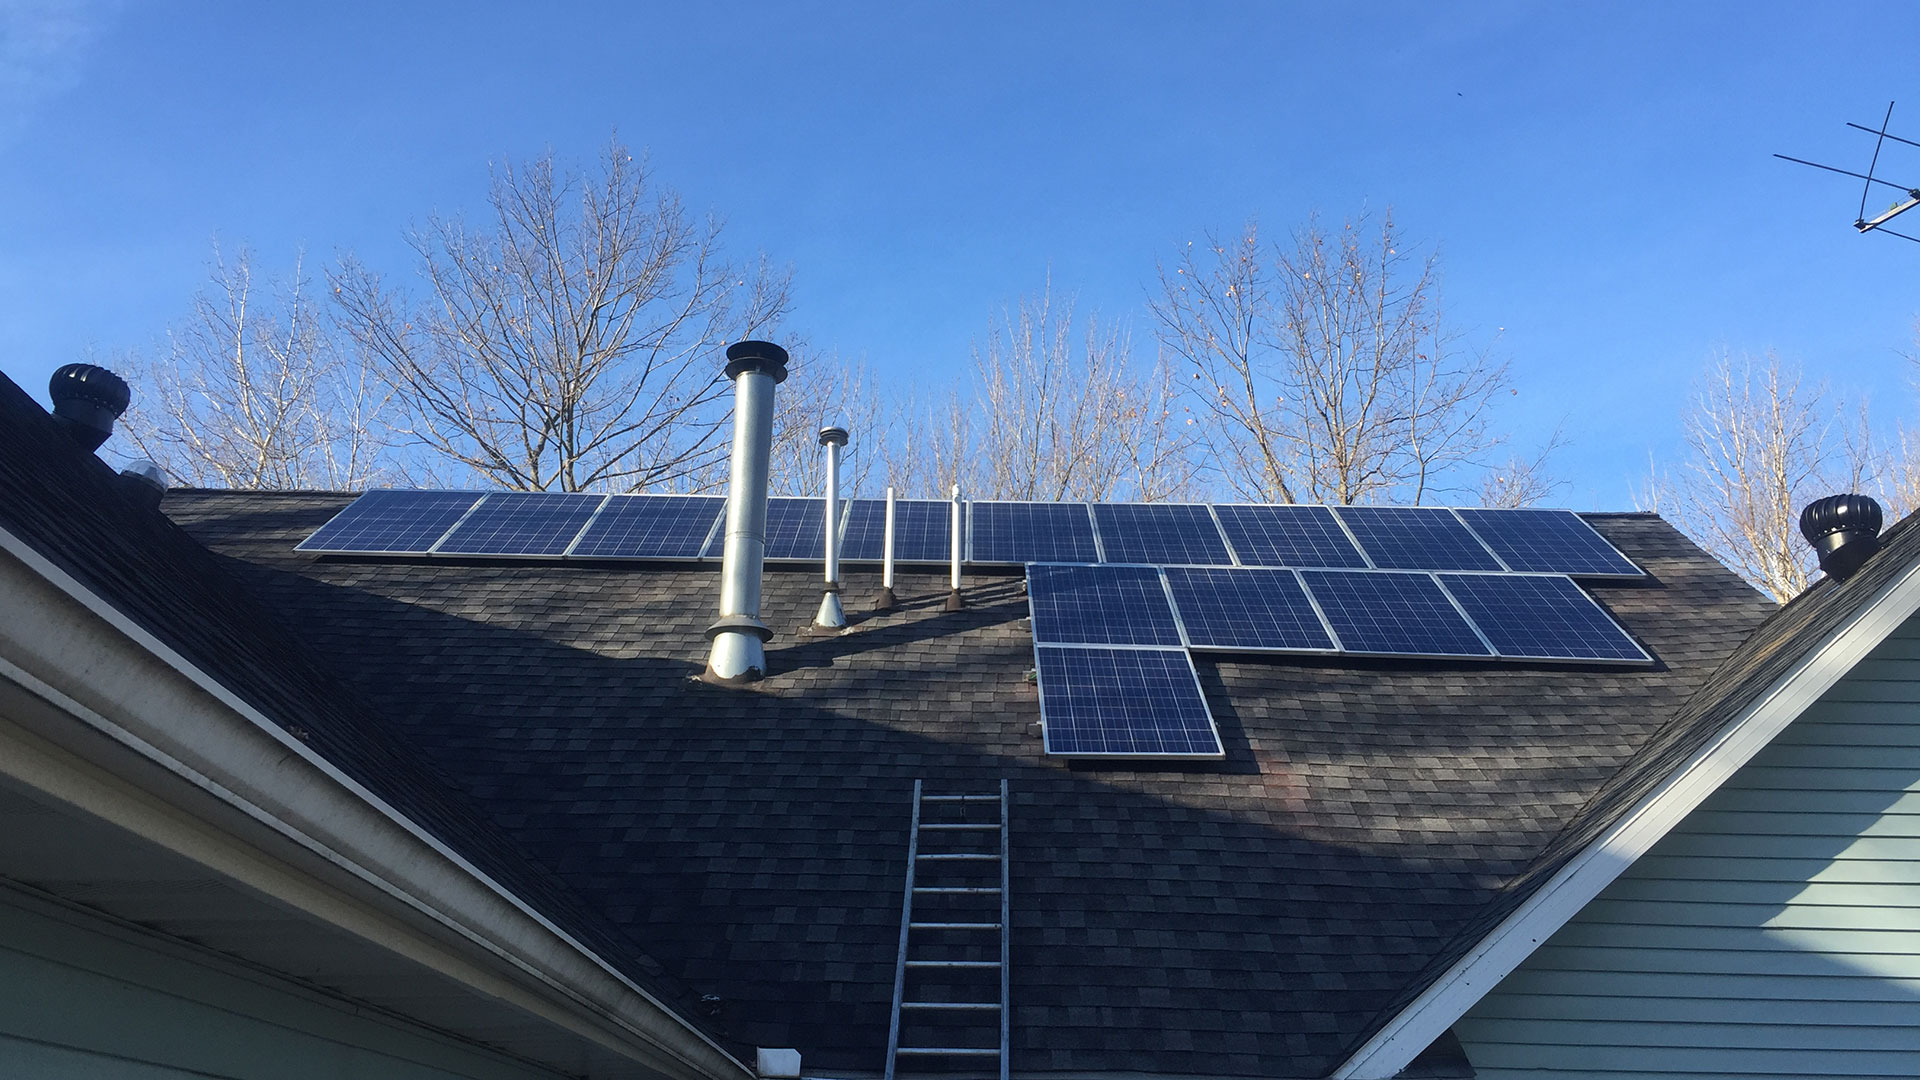 <!--googleoff: index-->Solar for Michigan<!--googleon: index--> Solar Panels, Solar Panel Installation and Solar Inspection